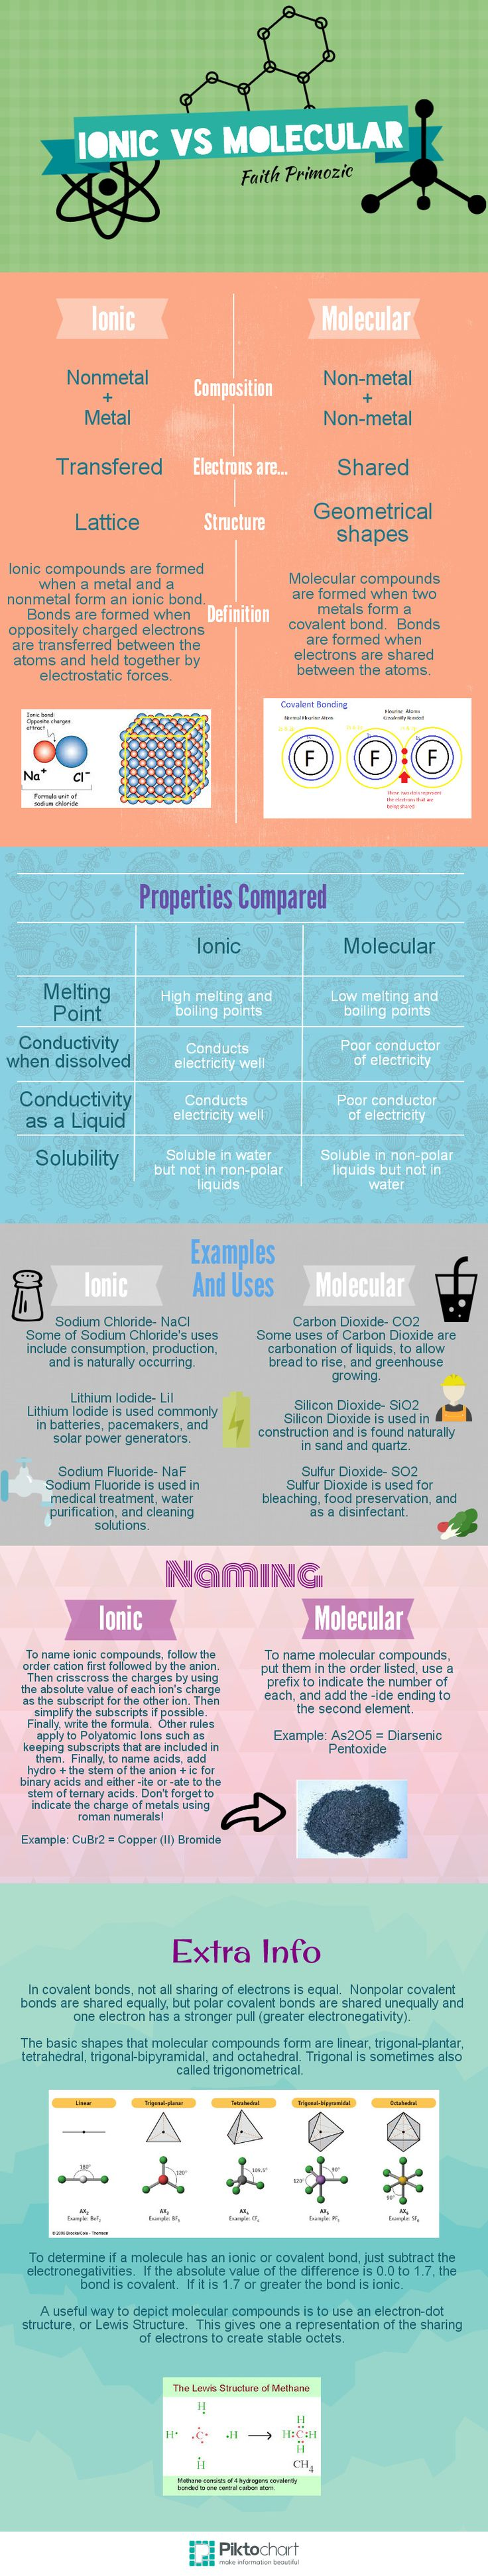 17 best ideas about chemistry help chemistry ionic and molecular compounds infographic misses out giant covalent yet lists sio2 as covalent example